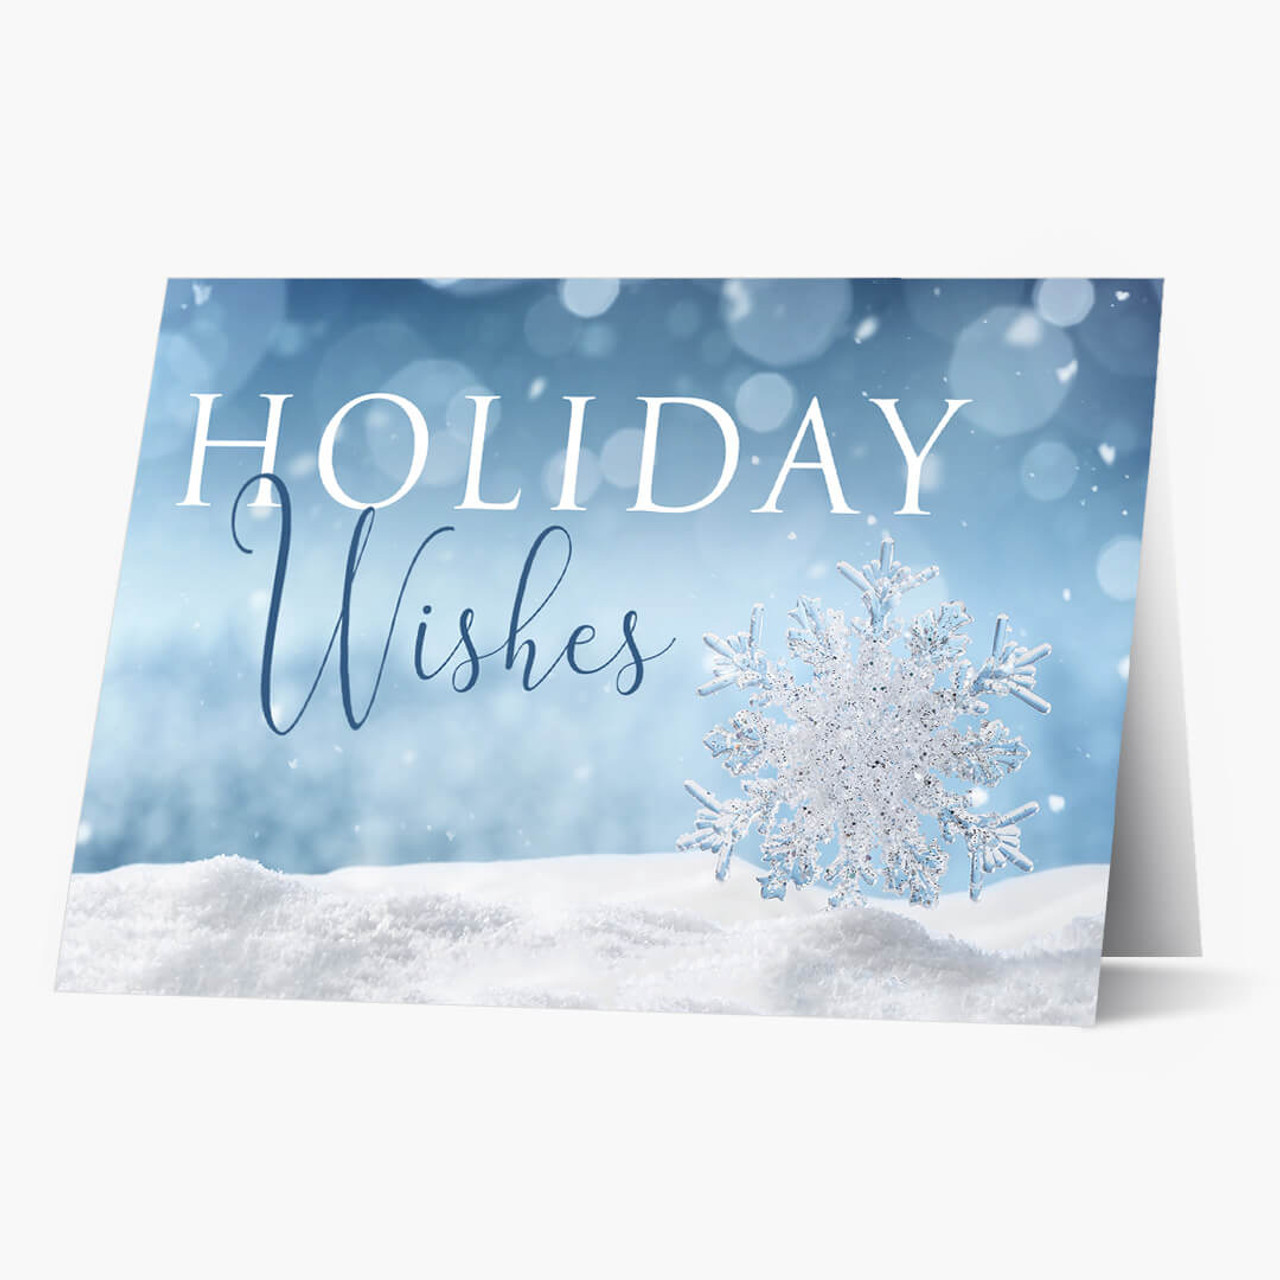 Shimmering Wishes Holiday Wishes Christmas Card